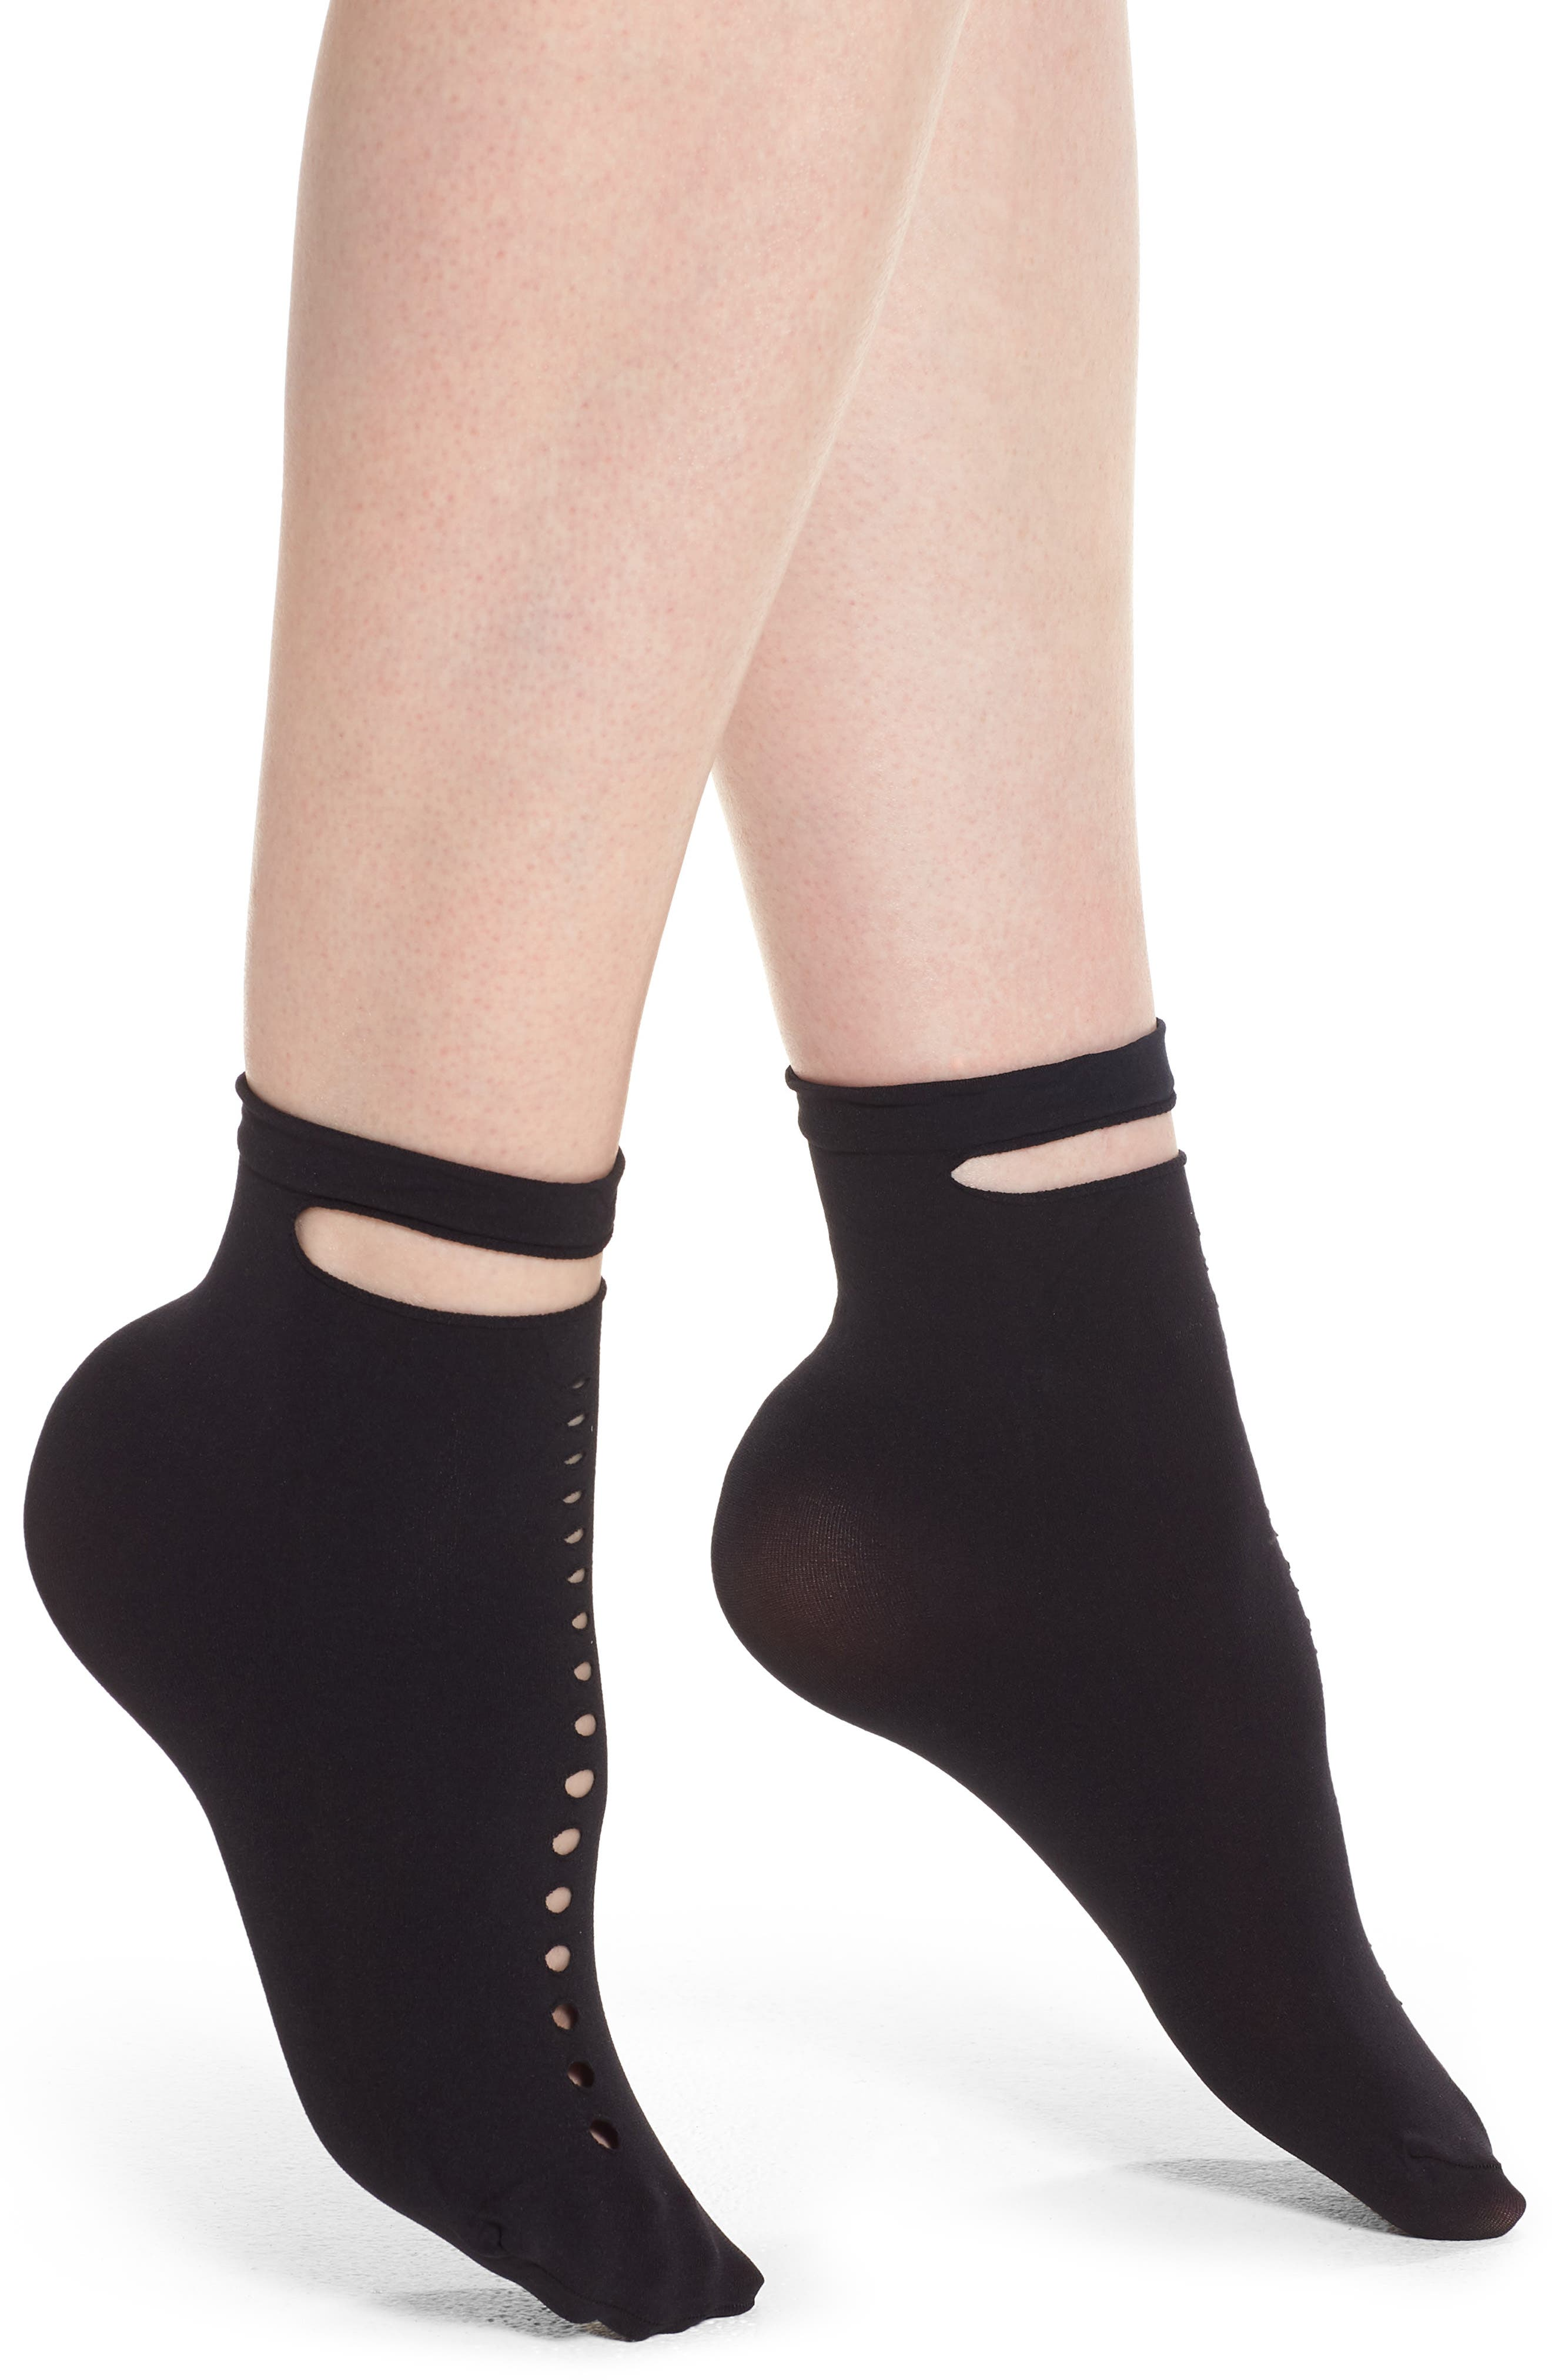 Calzino Abstract Belted Ankle Socks,                         Main,                         color, Black